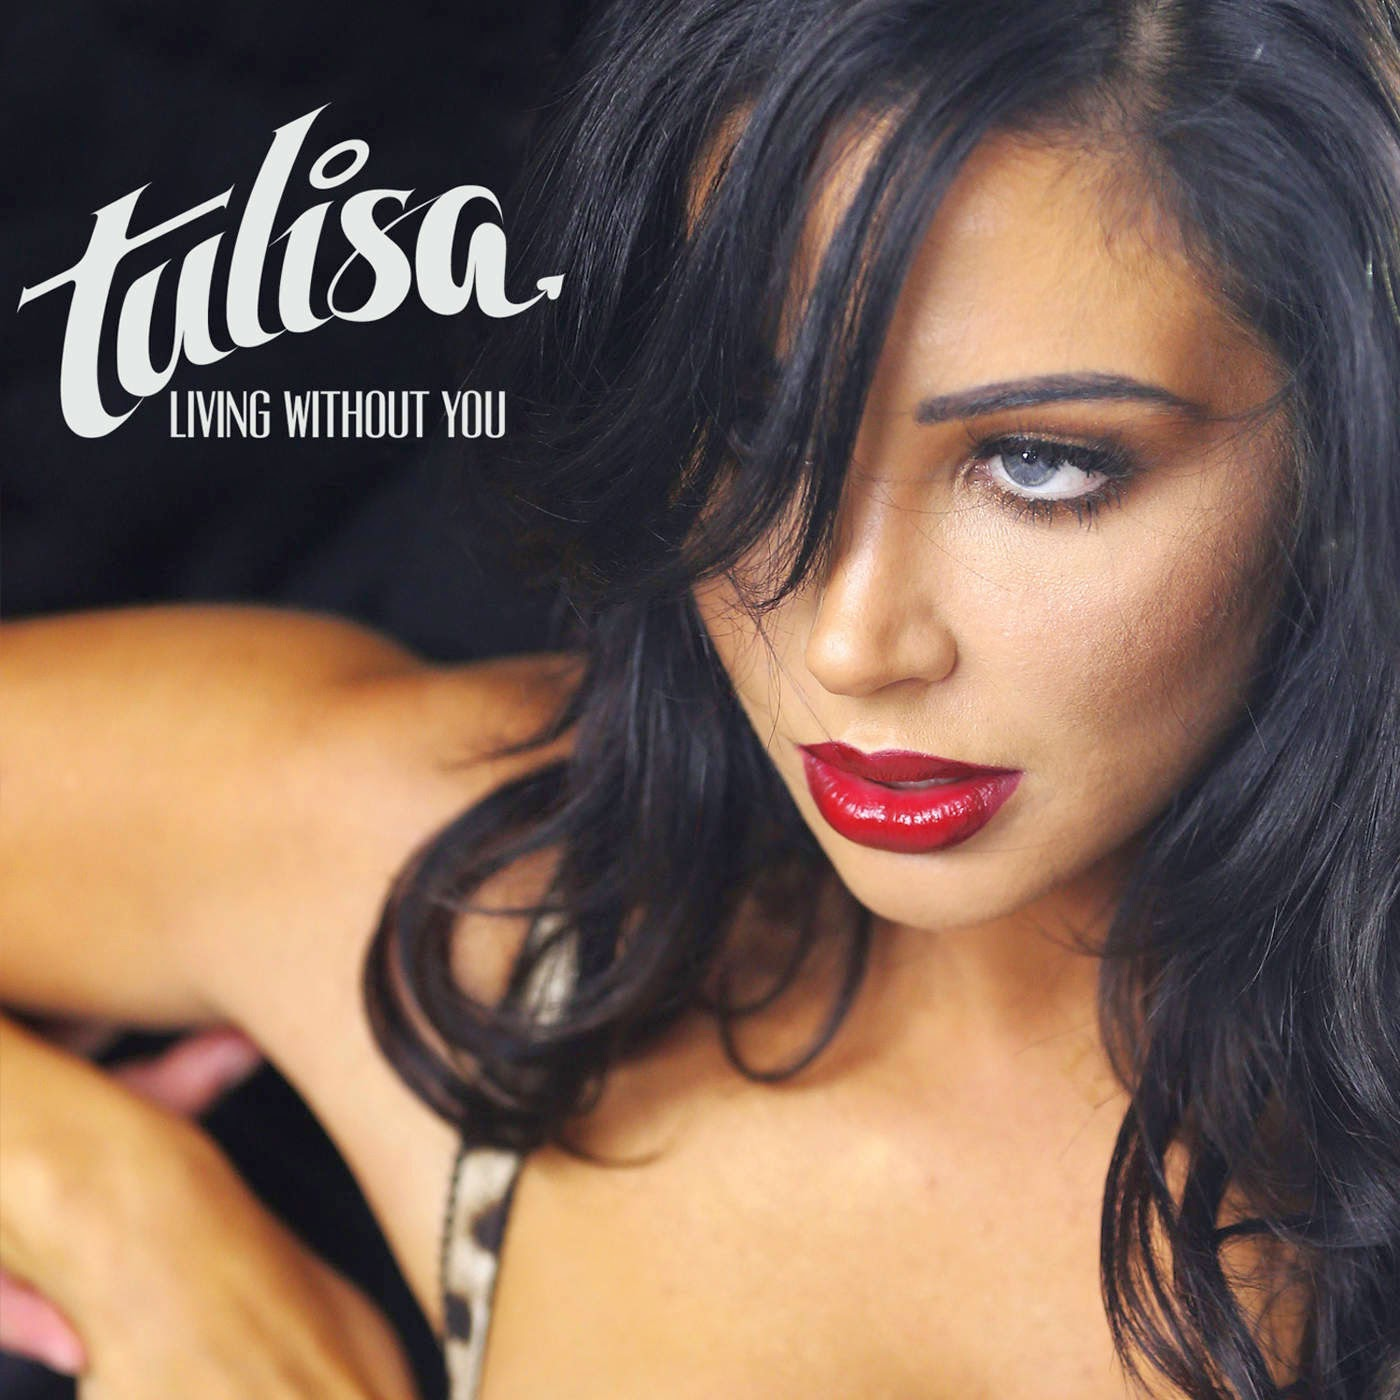 Tulisa - Living Without You - Single Cover